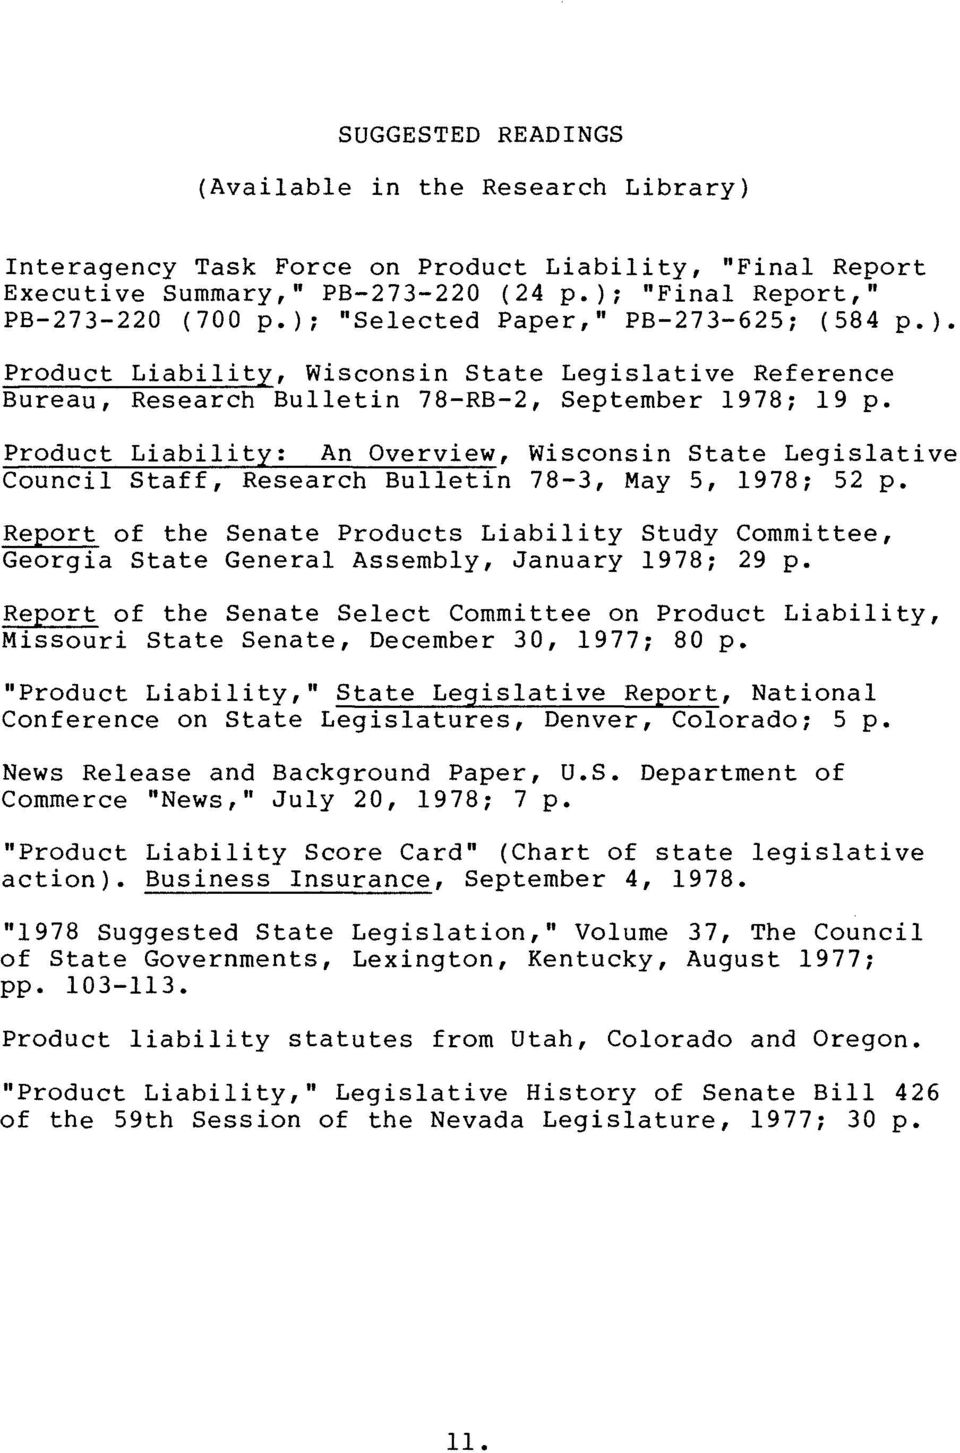 Product Liability: An Overview, Wisconsin State Legislative Council Staff, Research Bulletin 78-3, May 5, 1978; 52 p.